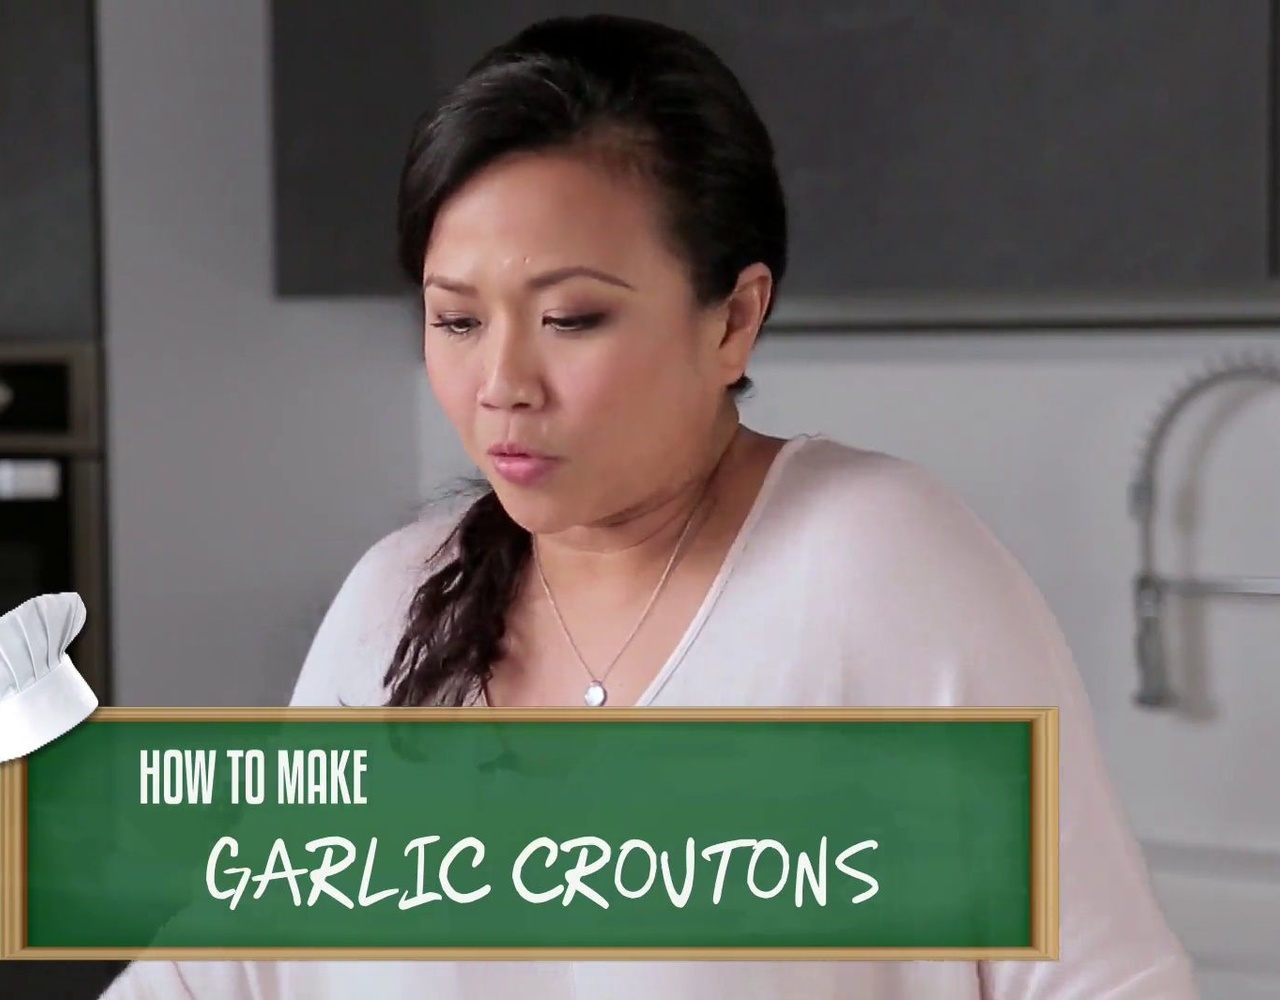 How To Cook Garlic Croutons